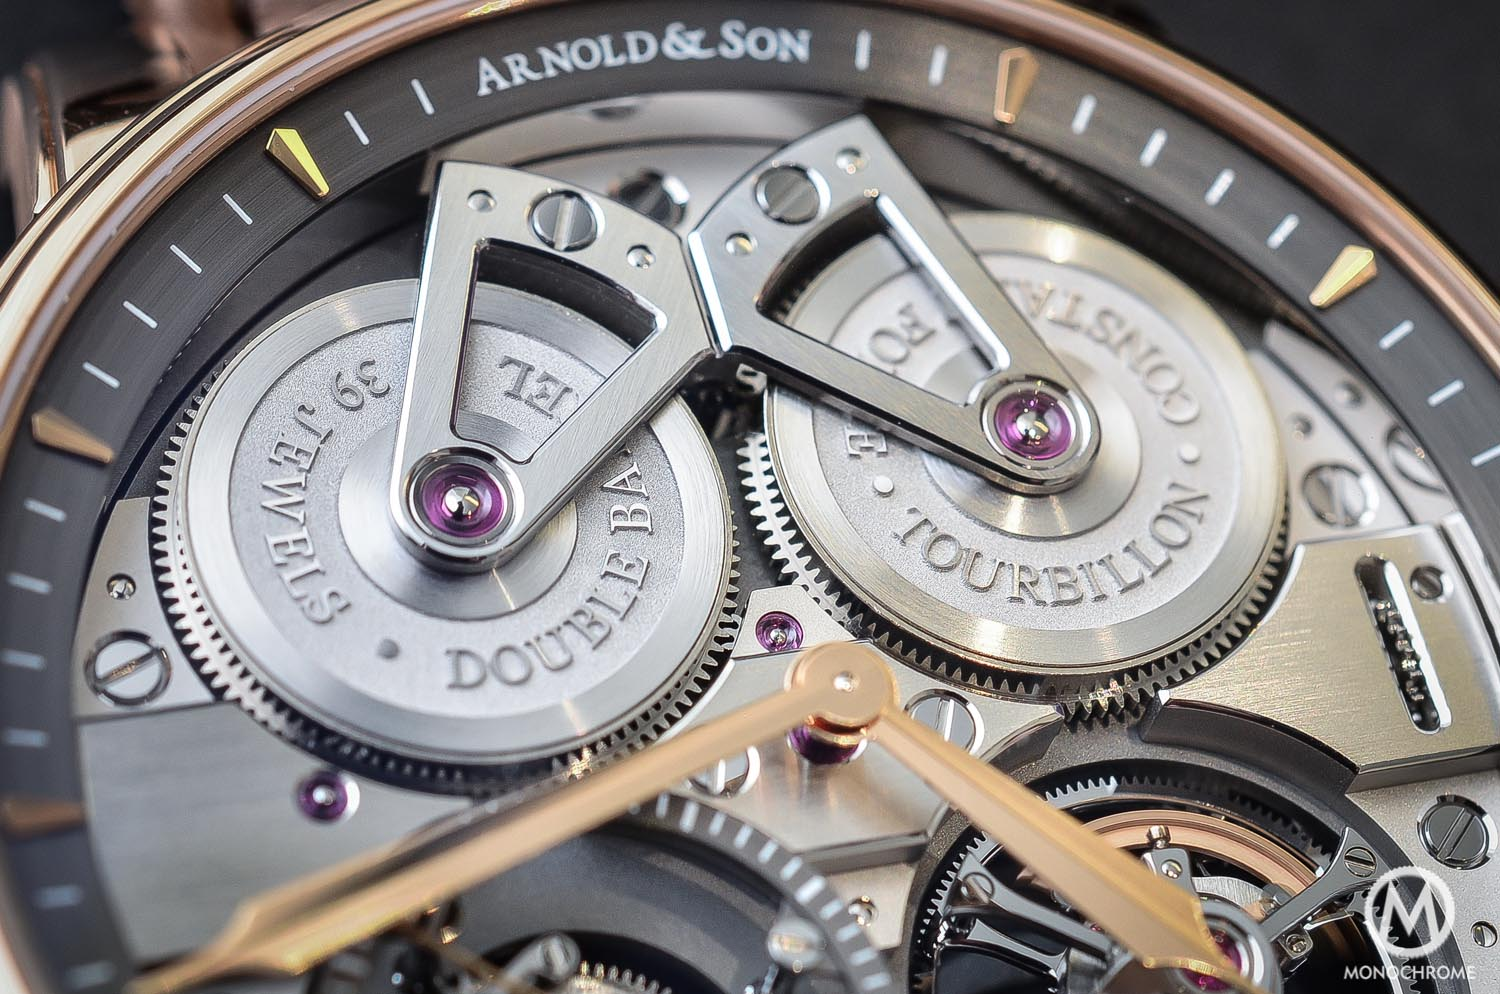 Arnold and Son Constant Force Tourbillon - hands-on review - double barrel